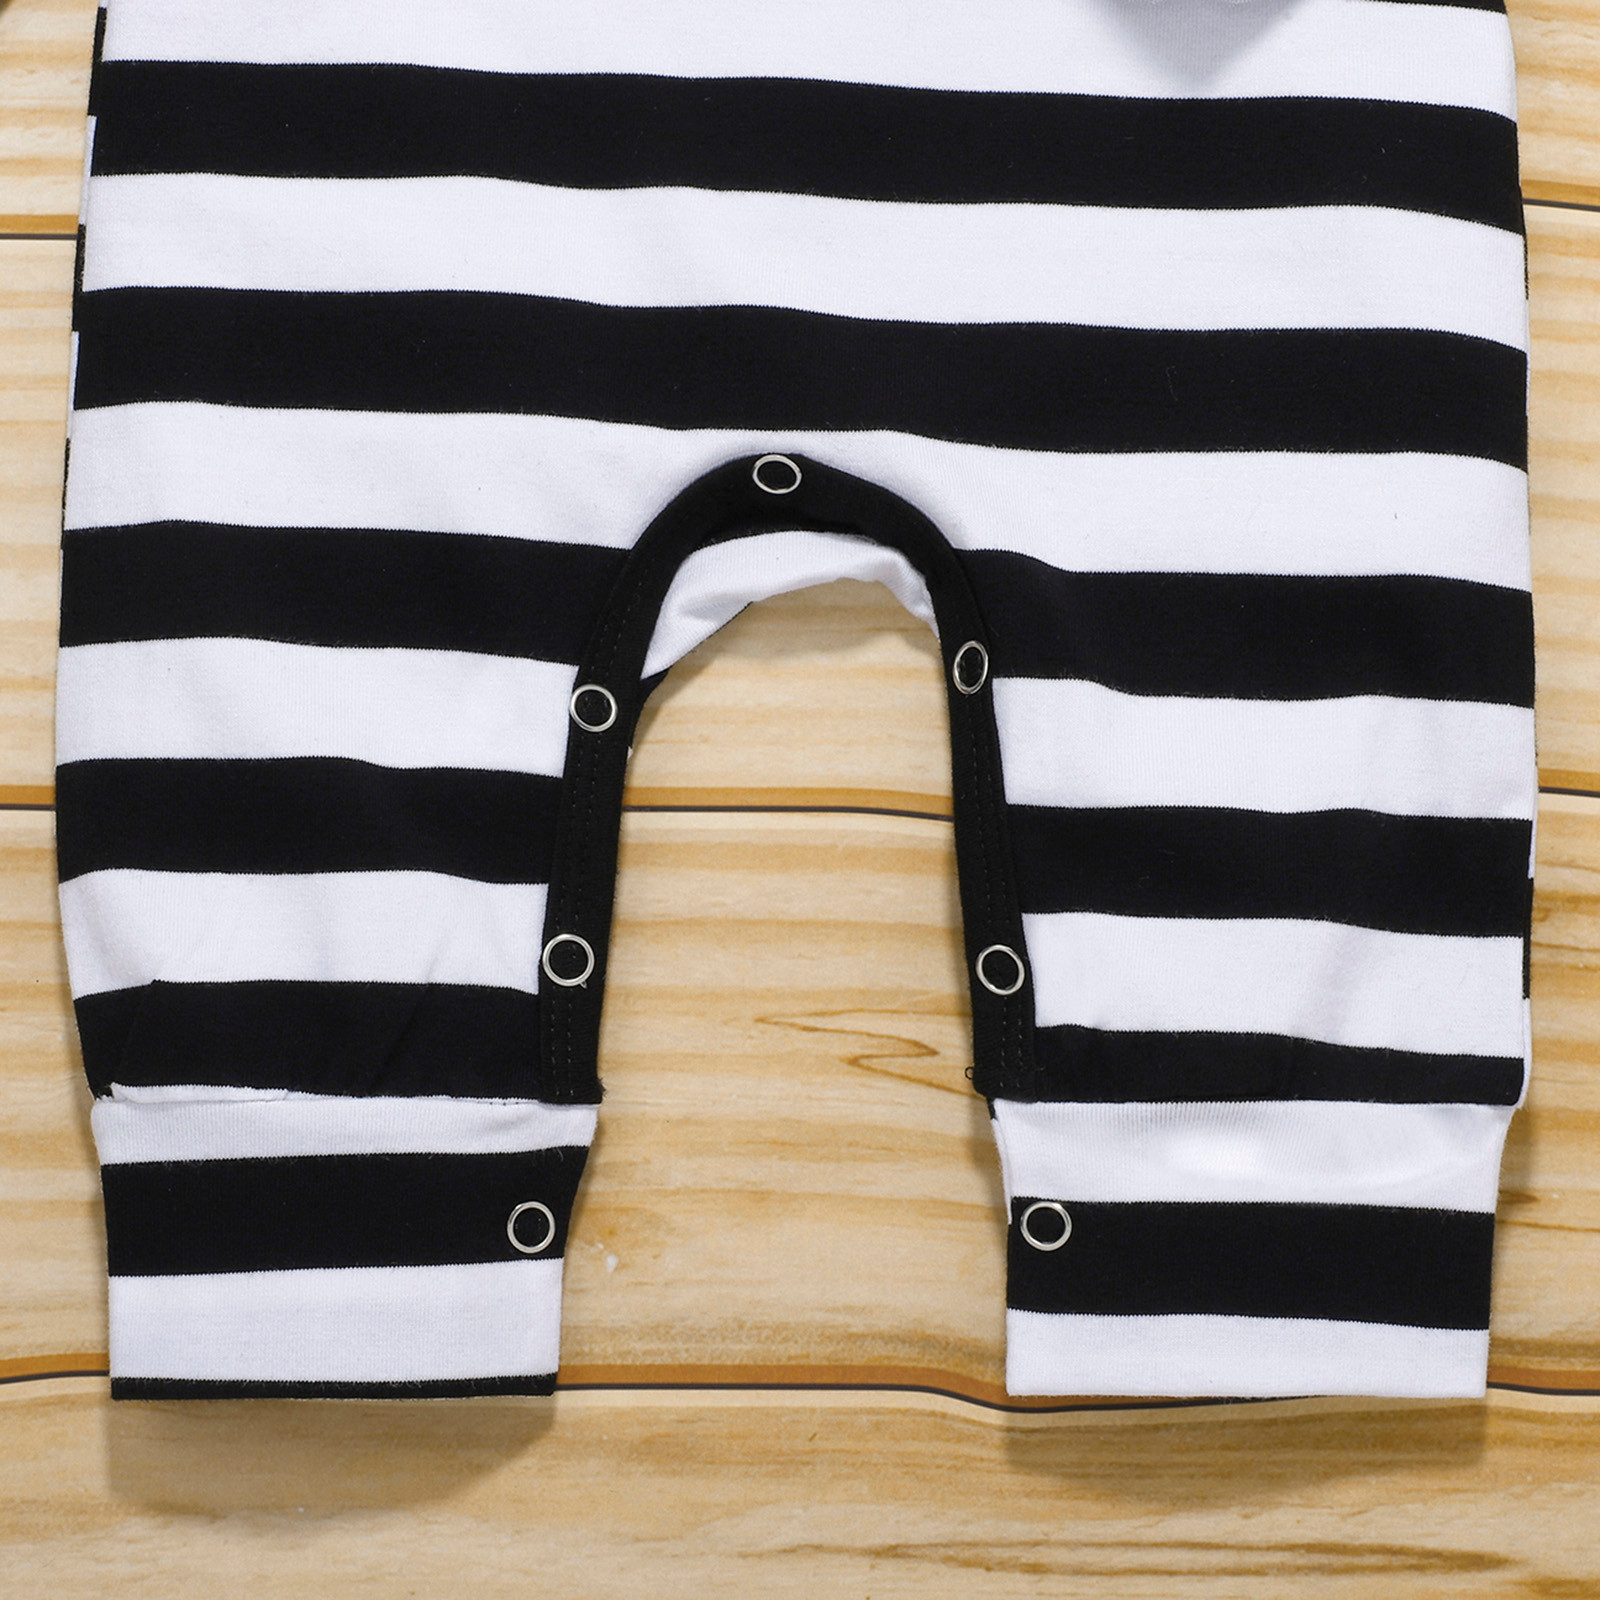 (0-12M) Baby Romper Set Winter Long Sleeve New Patch Printed Striped Button Romper + Hat + Saliva Towel Set детская одежда 50* | Happy Baby Mama